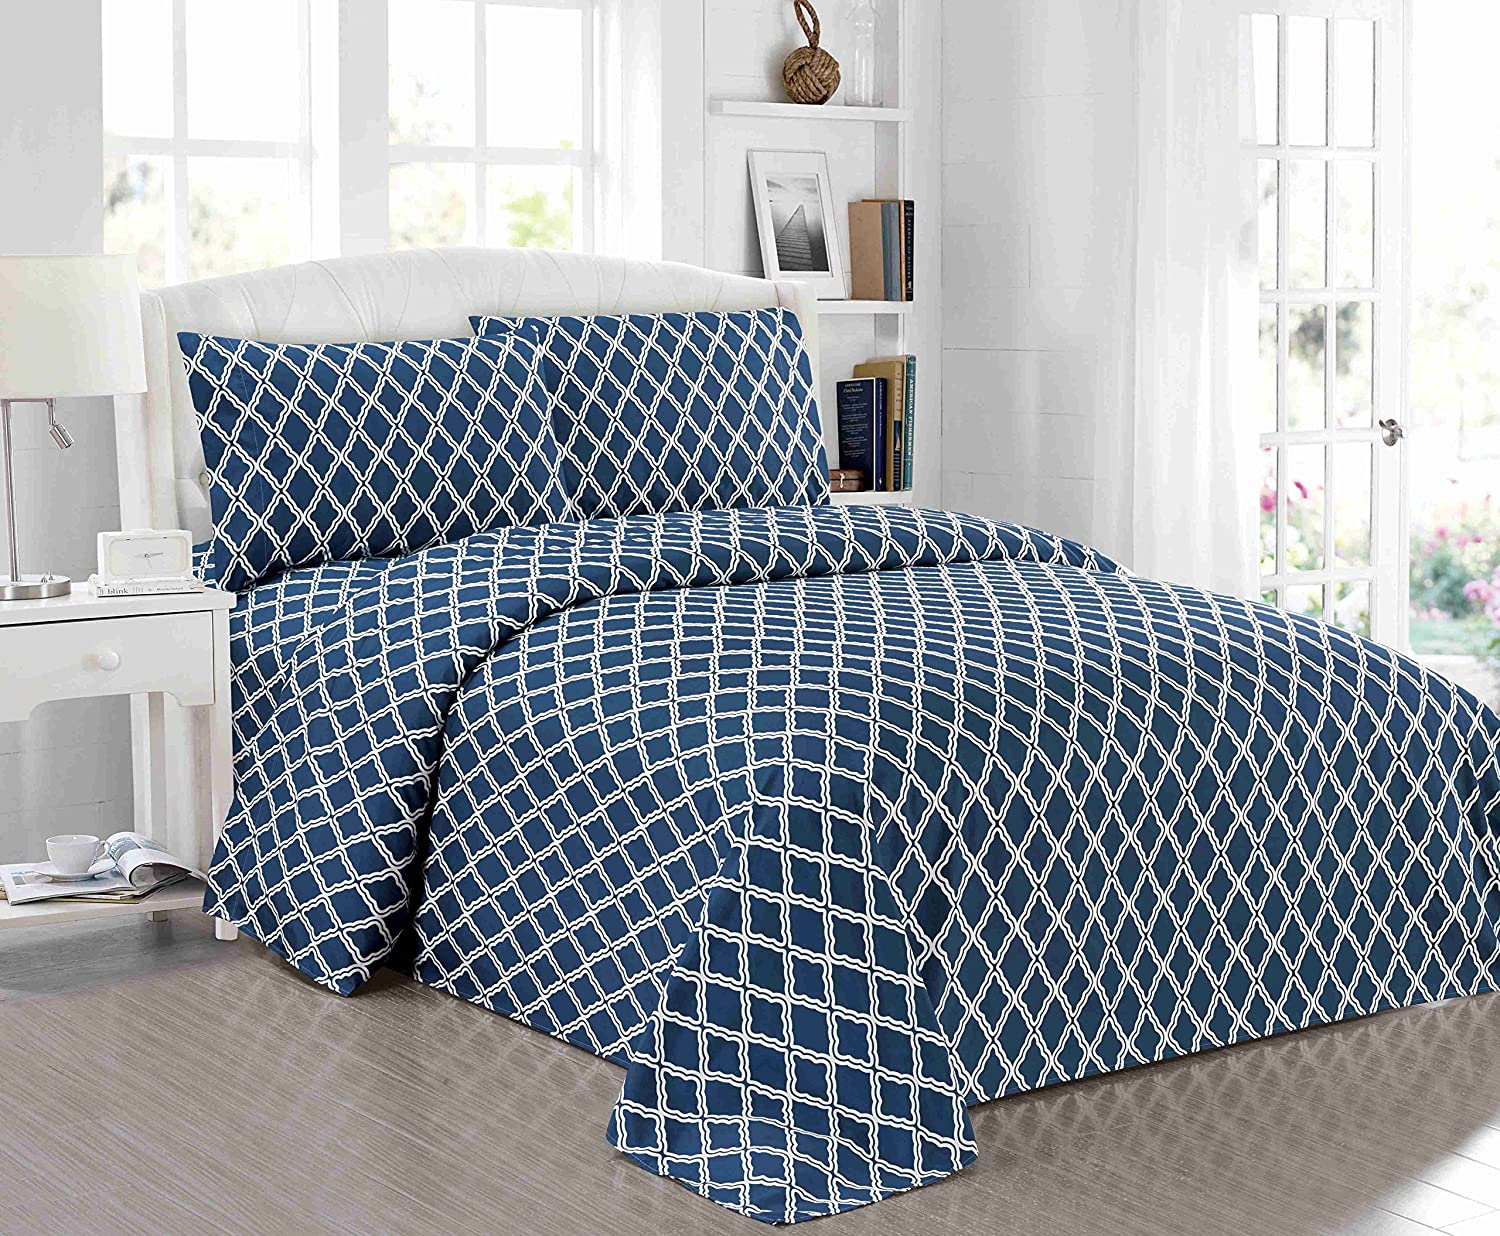 3 Piece Sheet Set Geometric Cone Design Printing (Twin, Navy